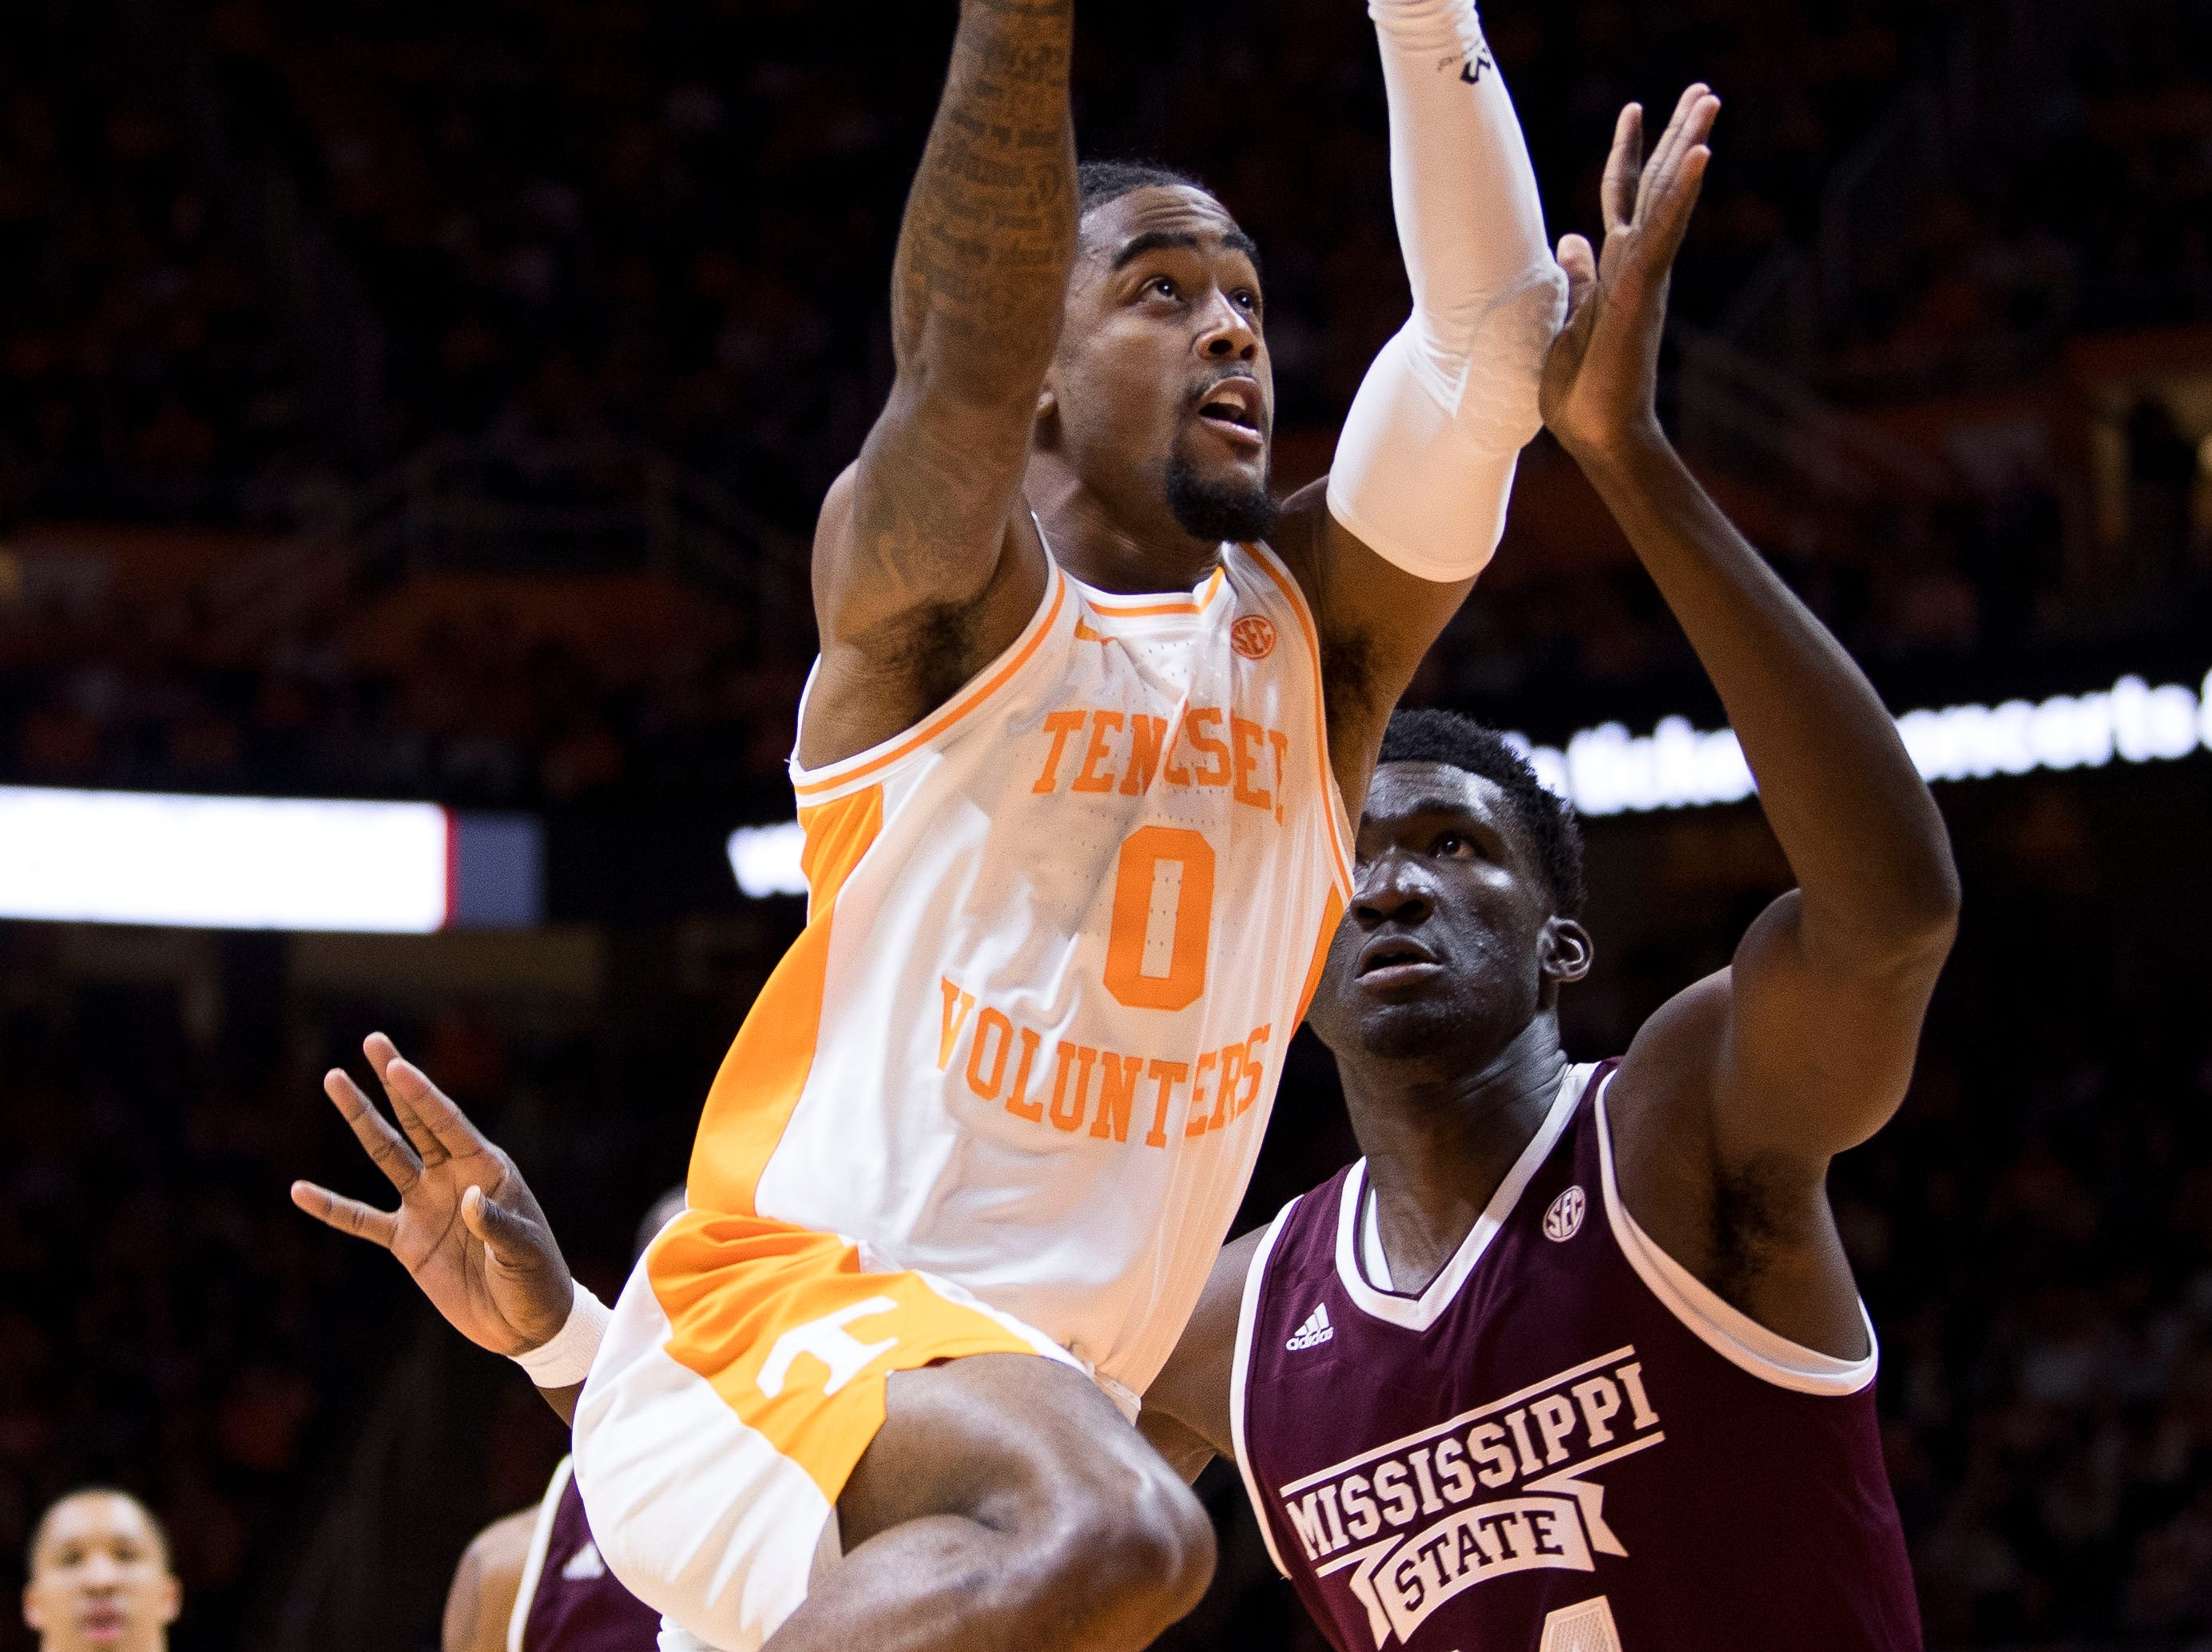 Tennessee guard Jordan Bone (0) attempts a shot during Tennessee's home finale against Mississippi State at Thompson-Boling Arena in Knoxville on Tuesday, March 5, 2019.